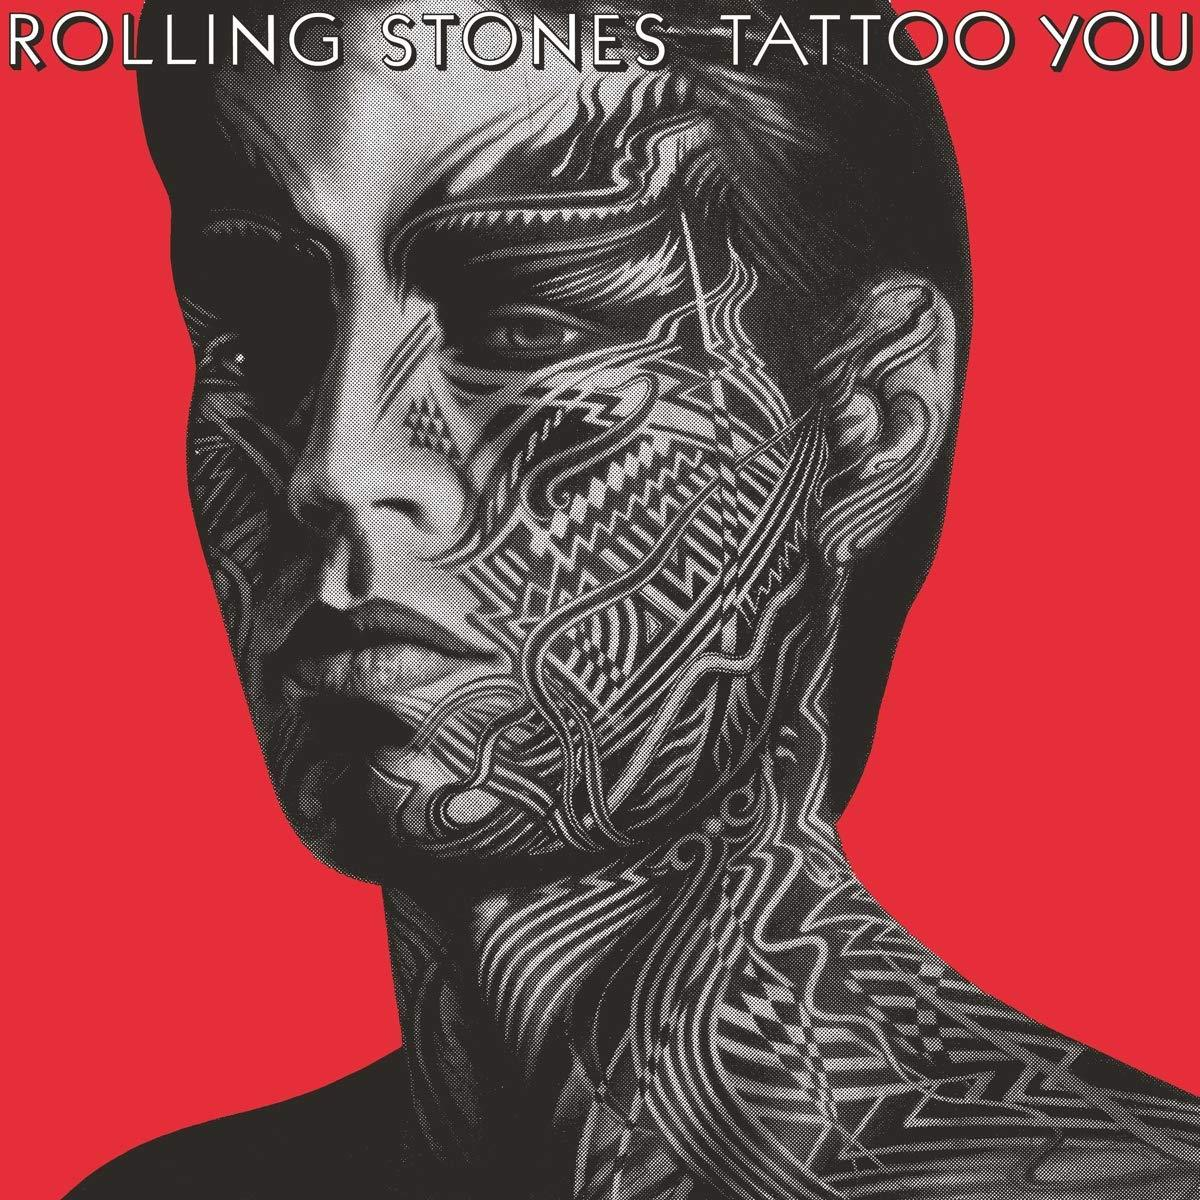 Rolling Stones, The - Tattoo You [LP] (180 Gram) - Urban Vinyl | Records, Headphones, and more.